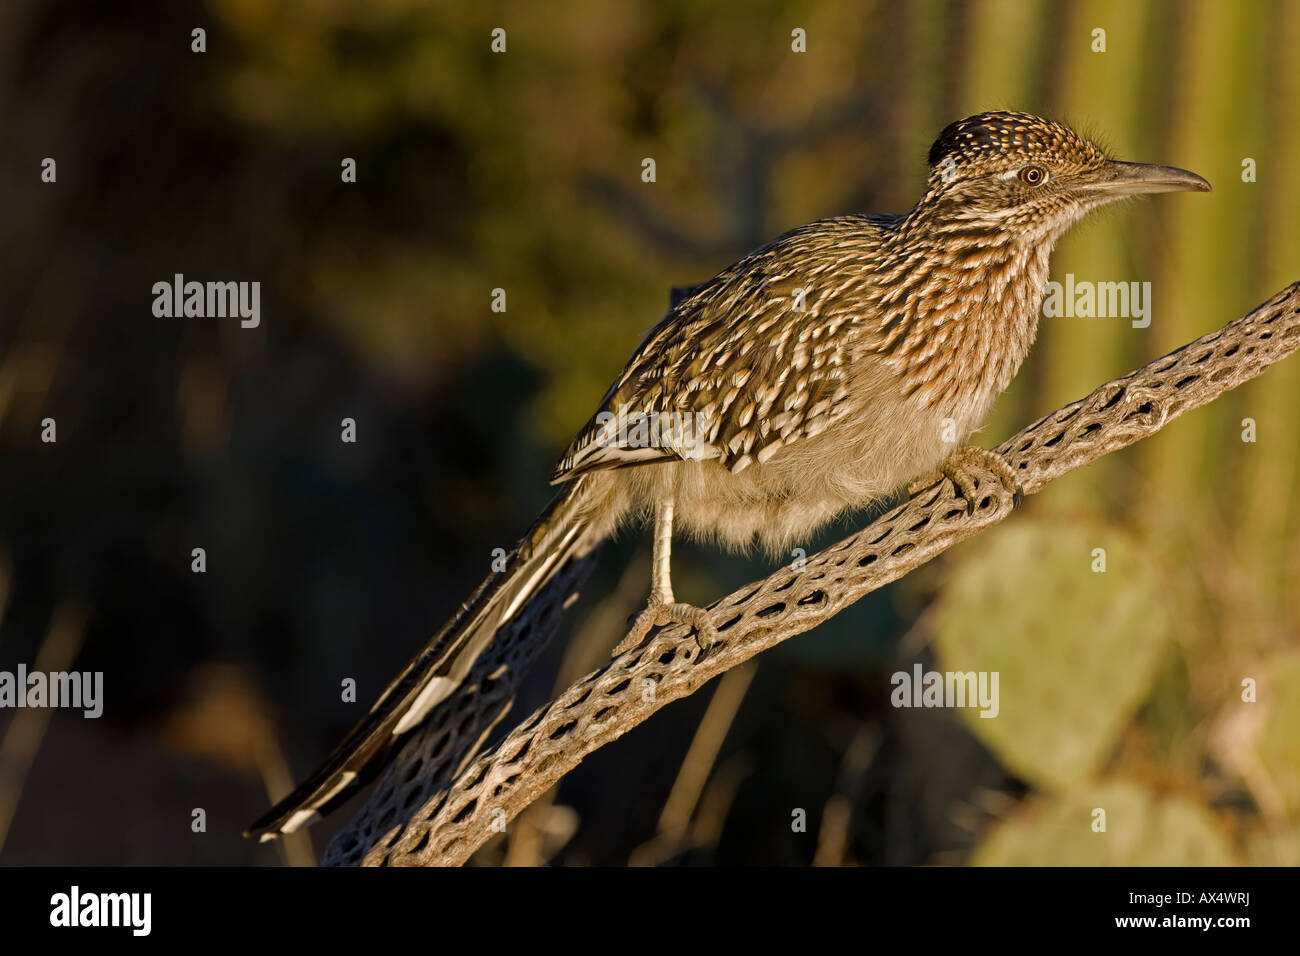 Greater Roadrunner Perched on Branch in Sonoran Desert of Arizona - Stock Image